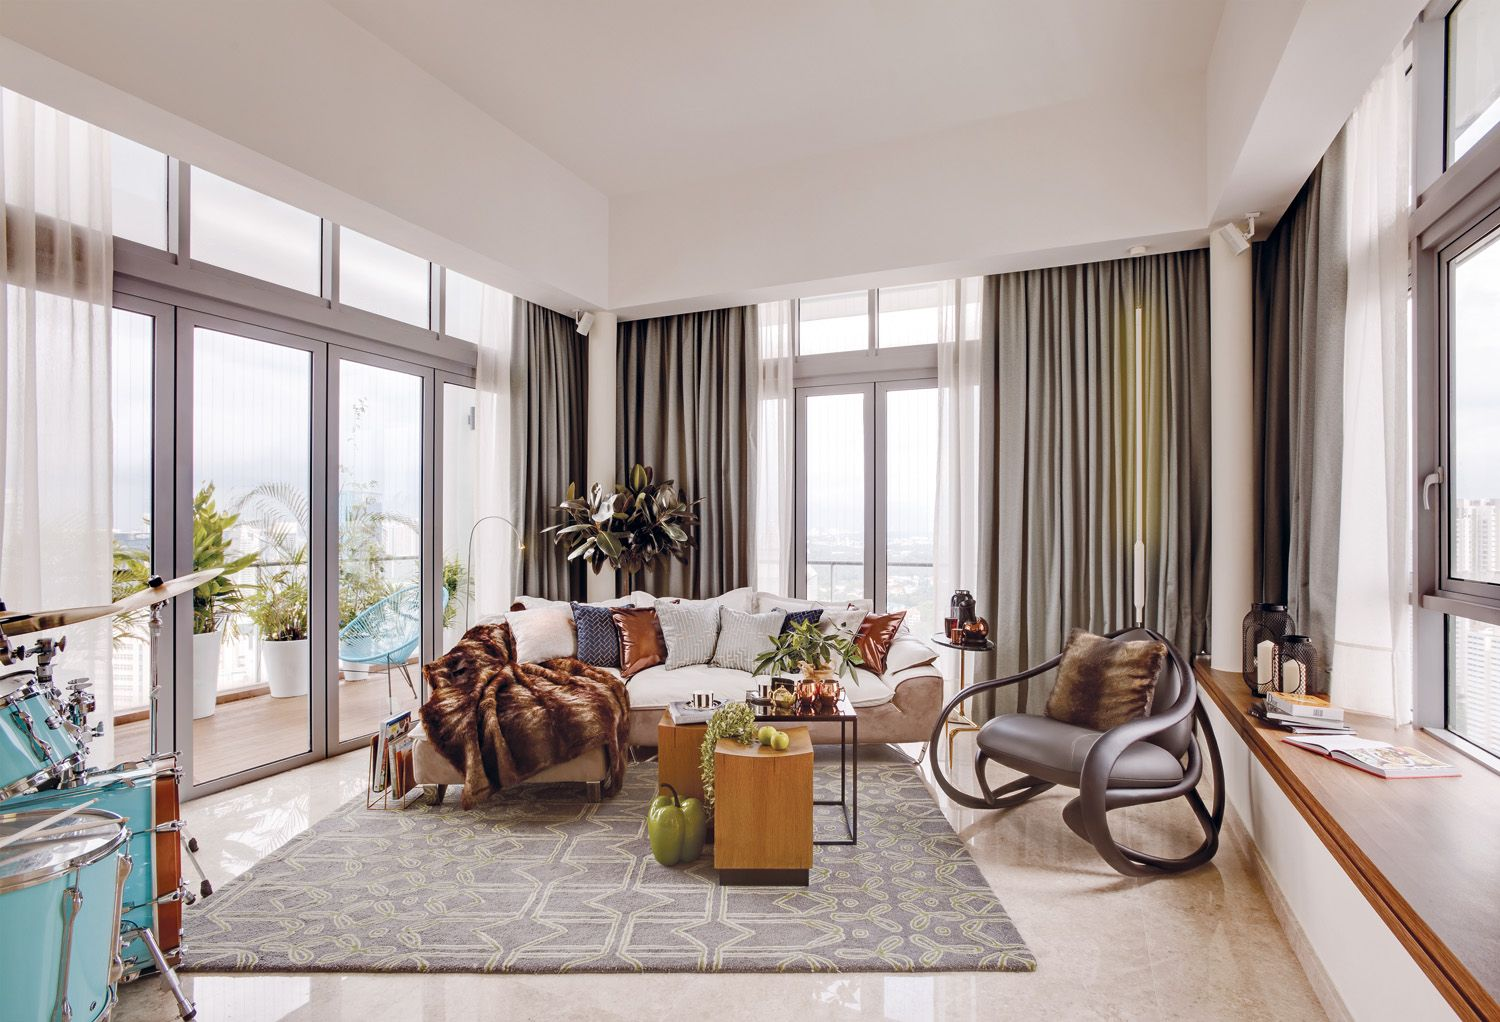 Home Tour: A Penthouse With A Tropical Flair